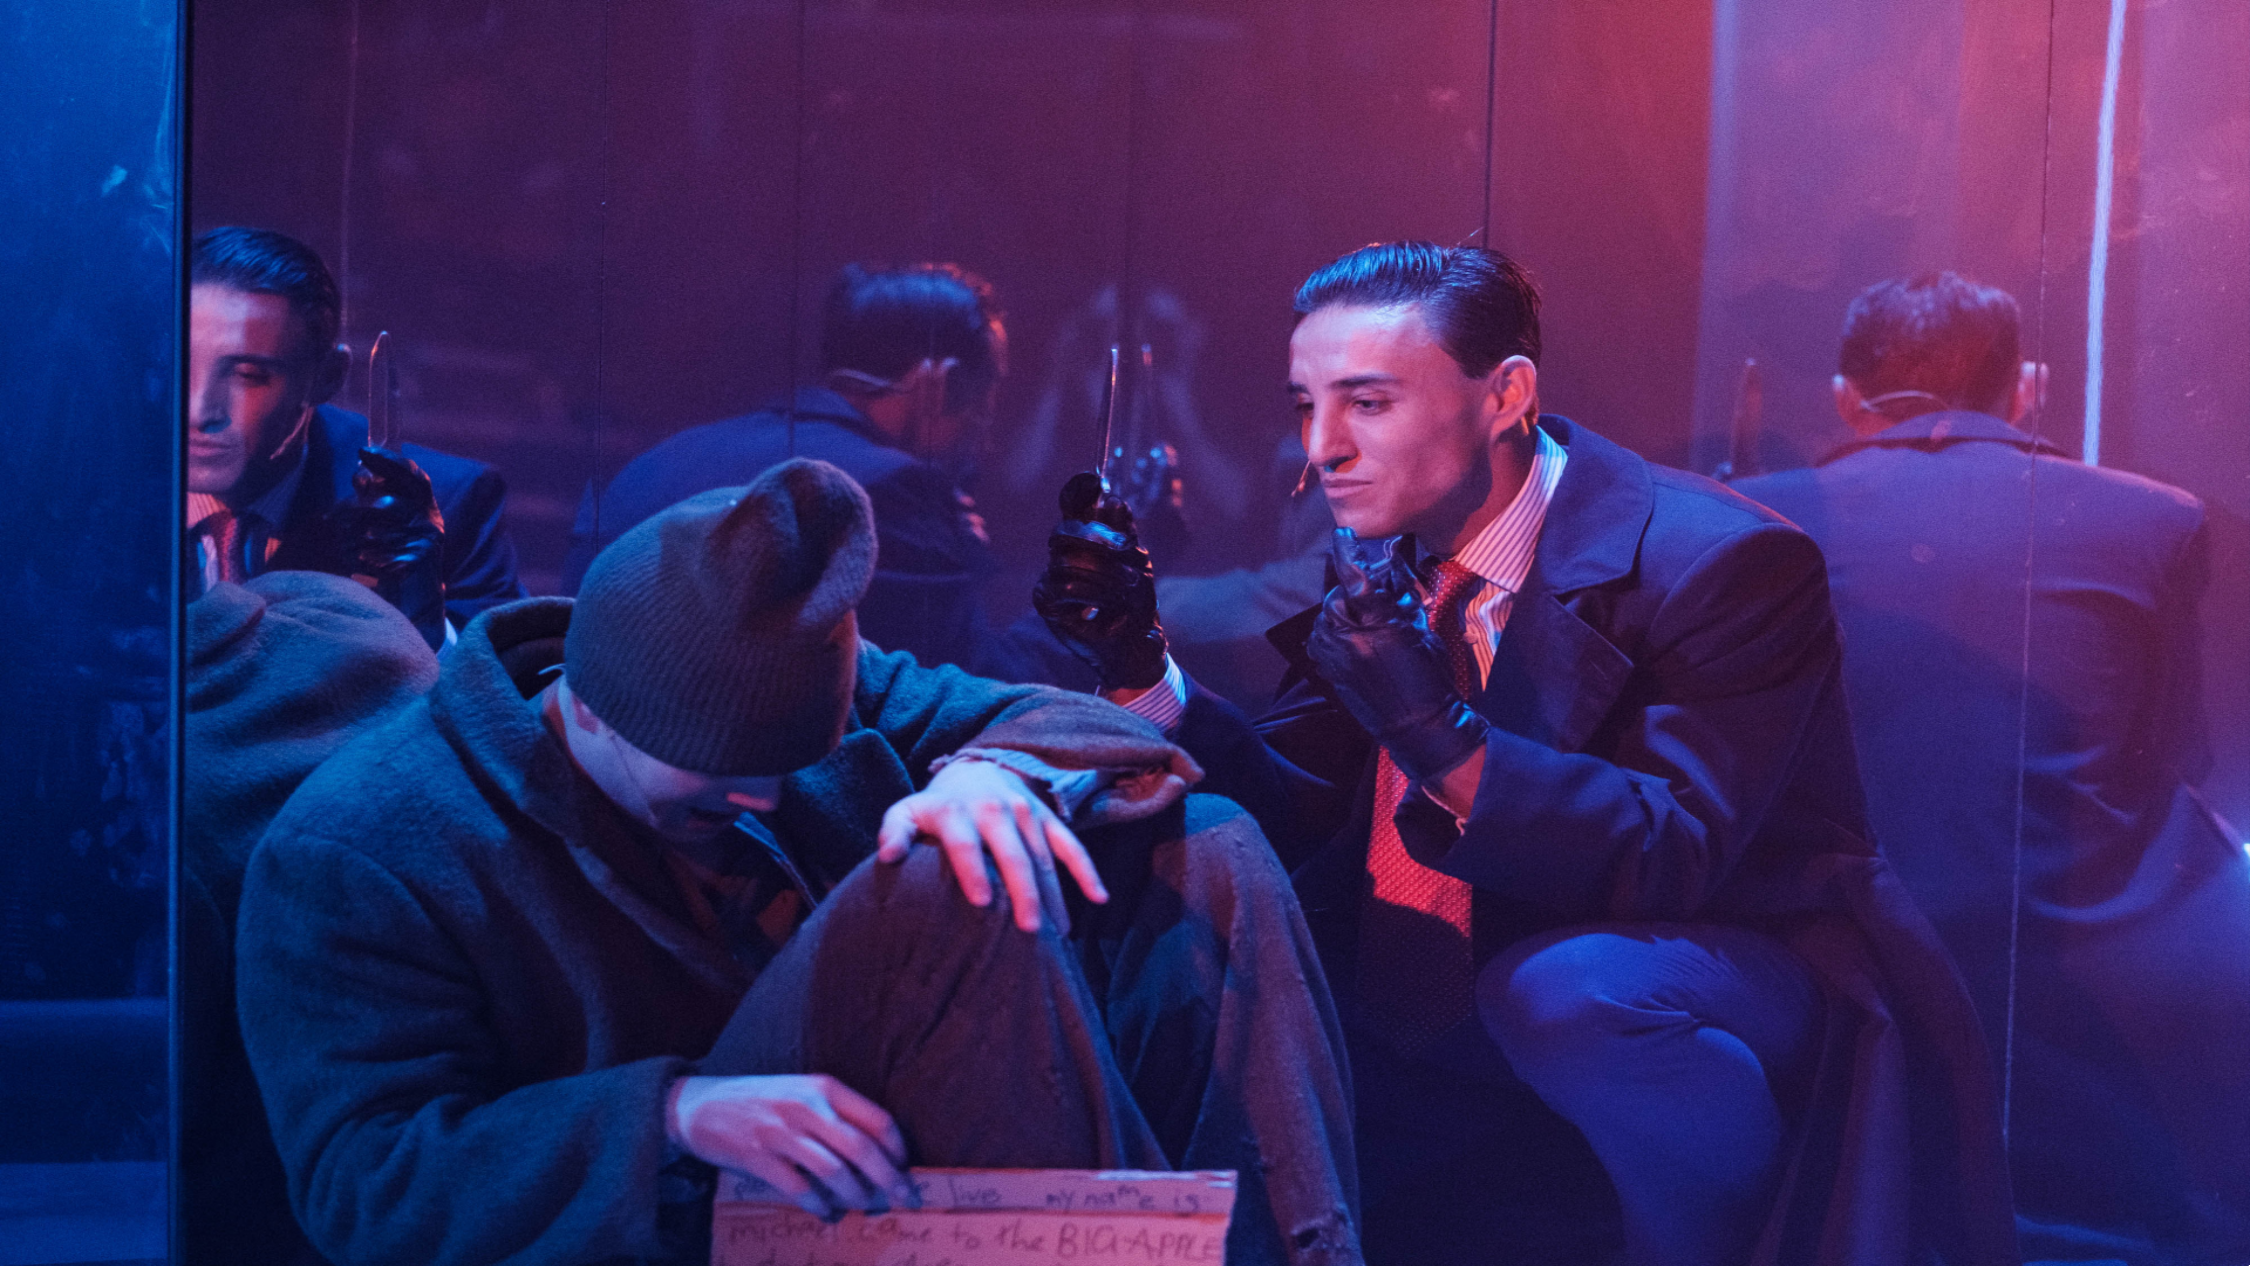 A suited Ben Gerrard in leather gloves menaces a homeless man with a knife in American Psychopath the Musical